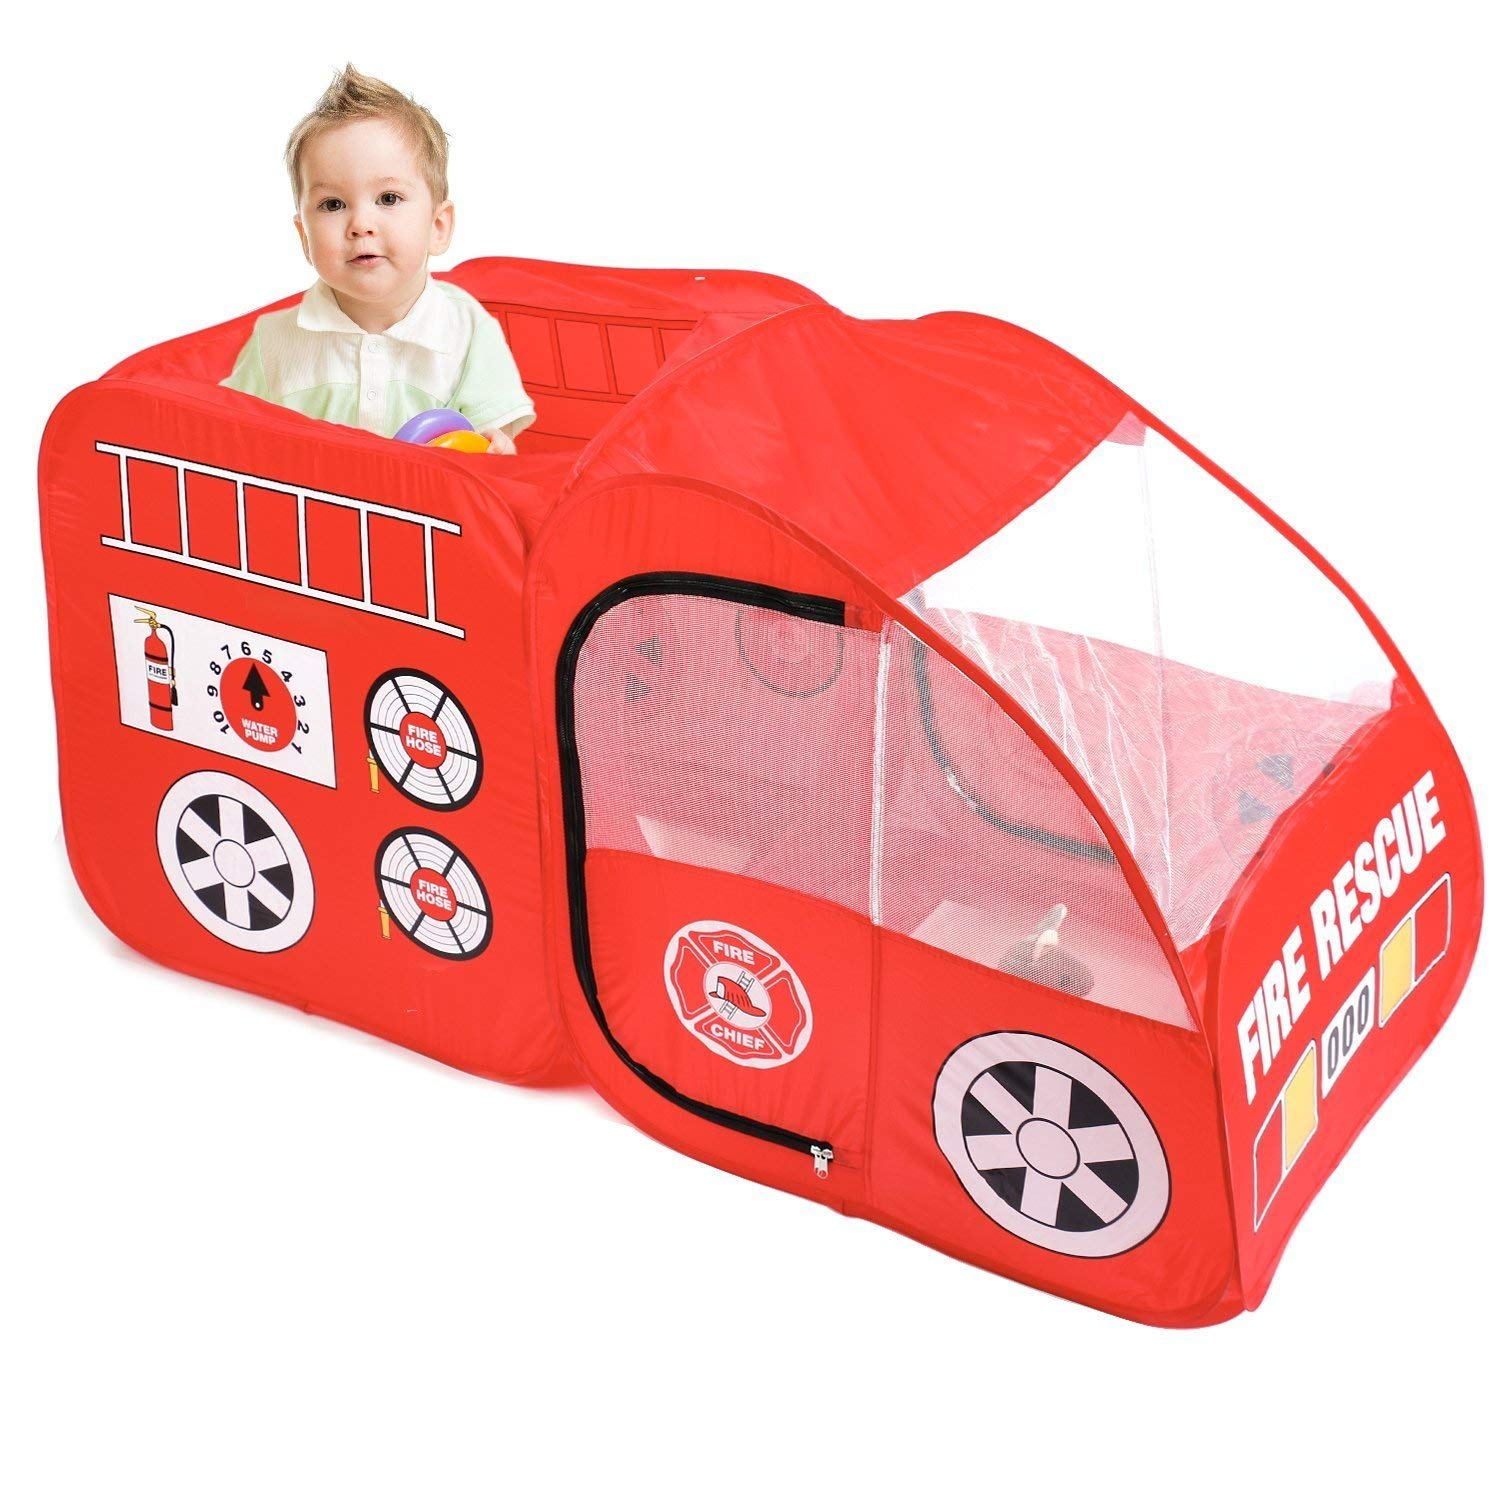 online store e58e7 6db15 Details about Fire Engine Truck Pop Up Play Tent Foldable Indoor/Outdoor  Playhouse for Kids